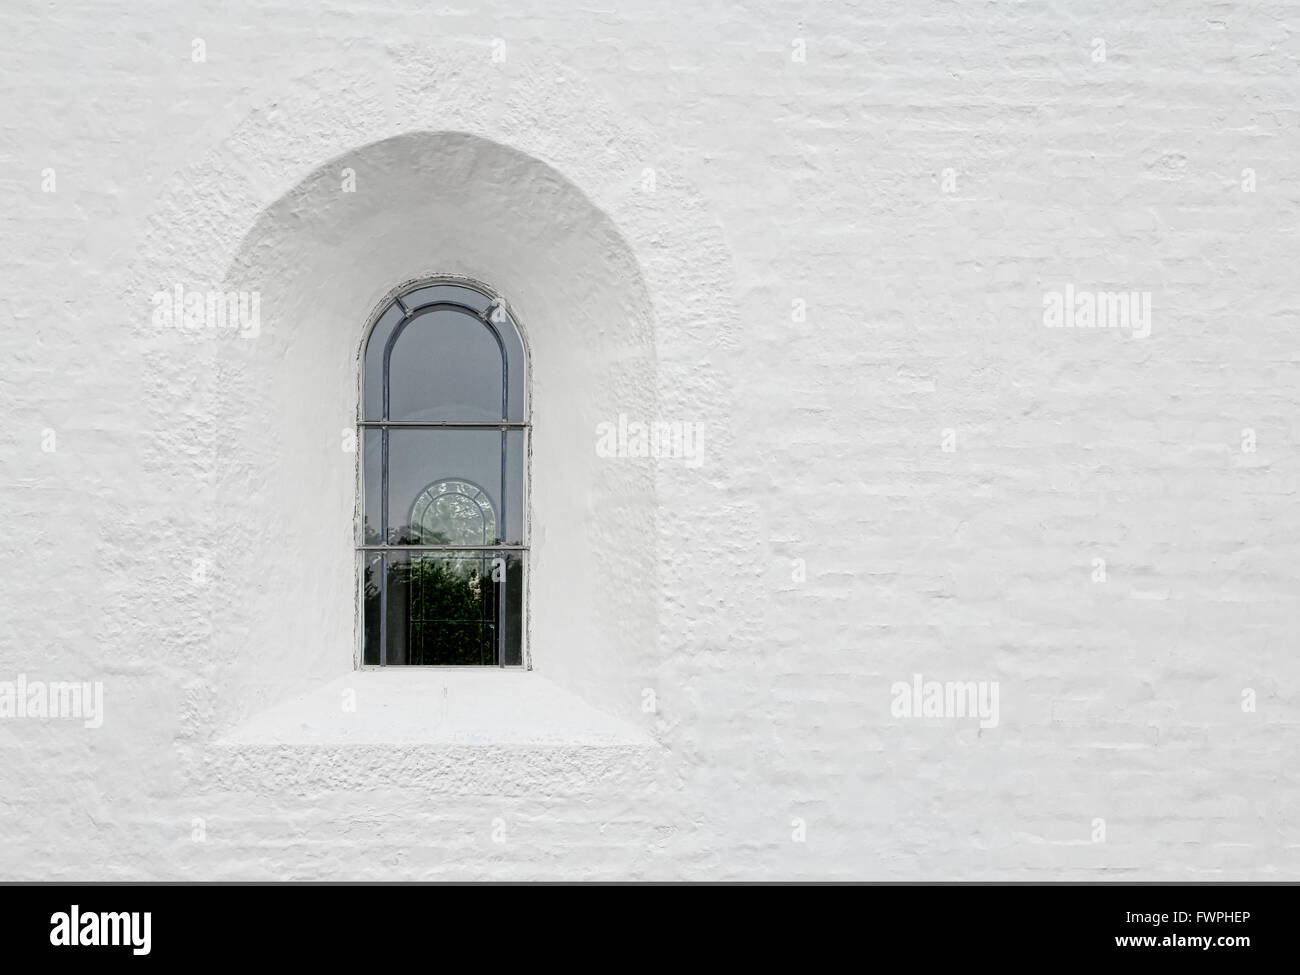 Arched leaded window in a white church wall - Stock Image